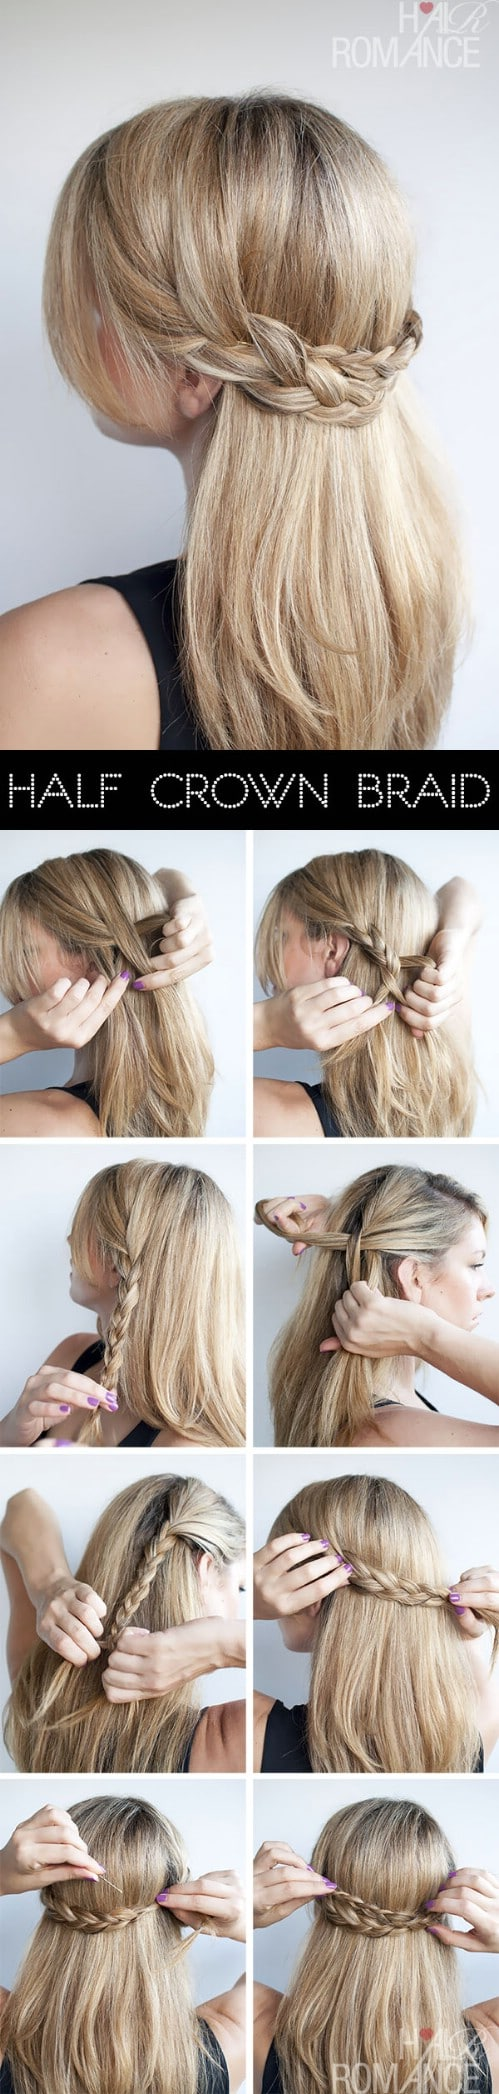 20 gorgeous 5 minute hairstyles to save you some snooze time diy 20 gorgeous 5 minute hairstyles to save you some snooze time baditri Image collections